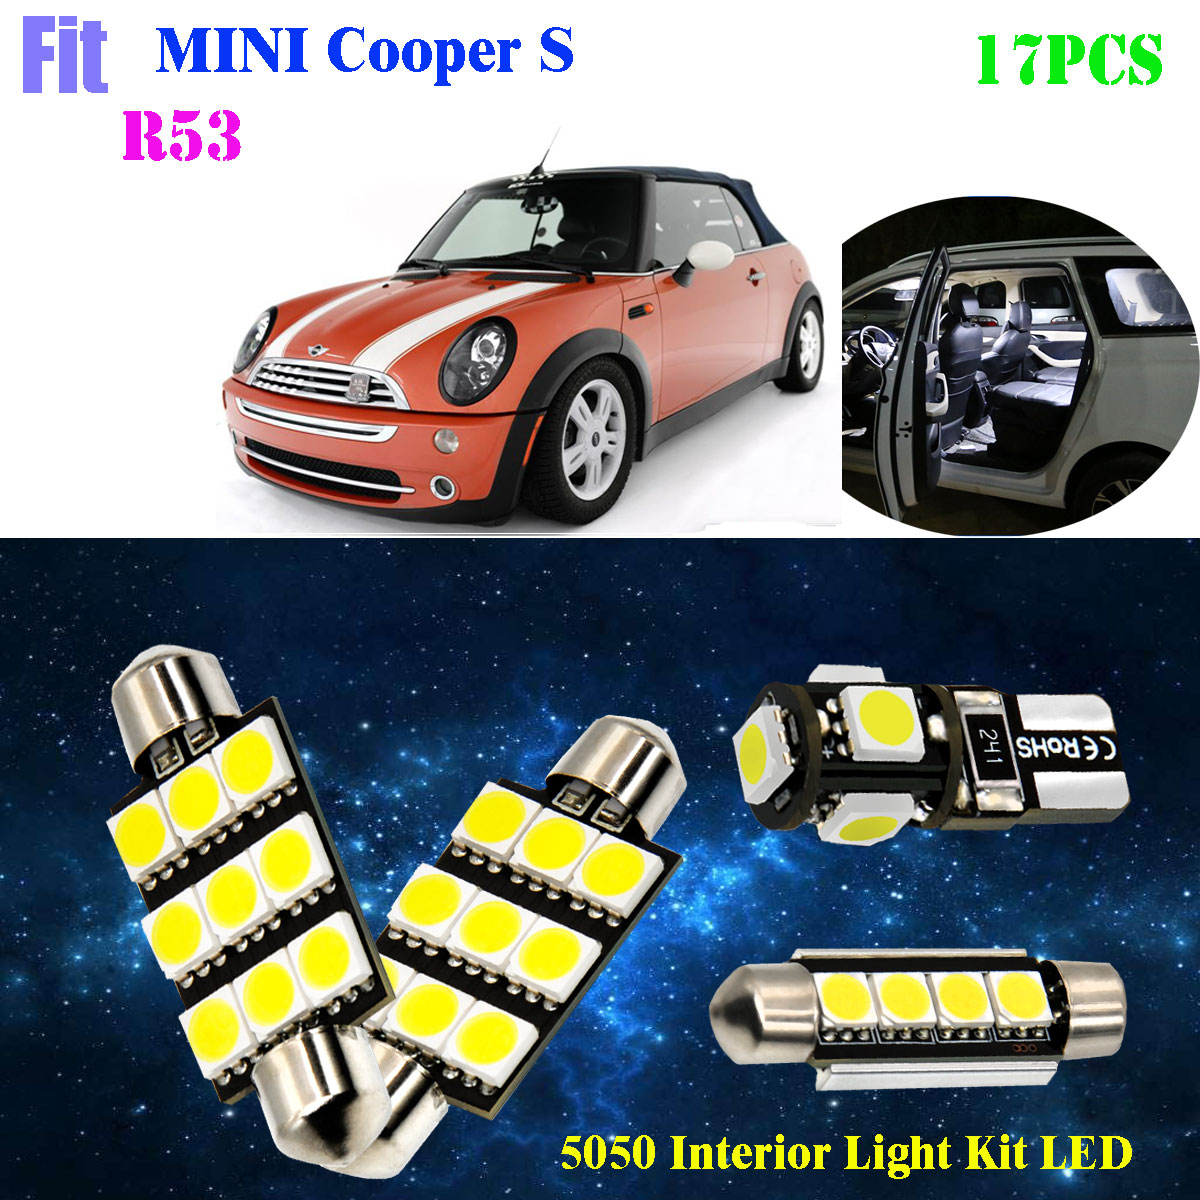 Bright White Xenon LED SMD Number Plate Lights Bulbs Mini Cooper R53 2000-2006